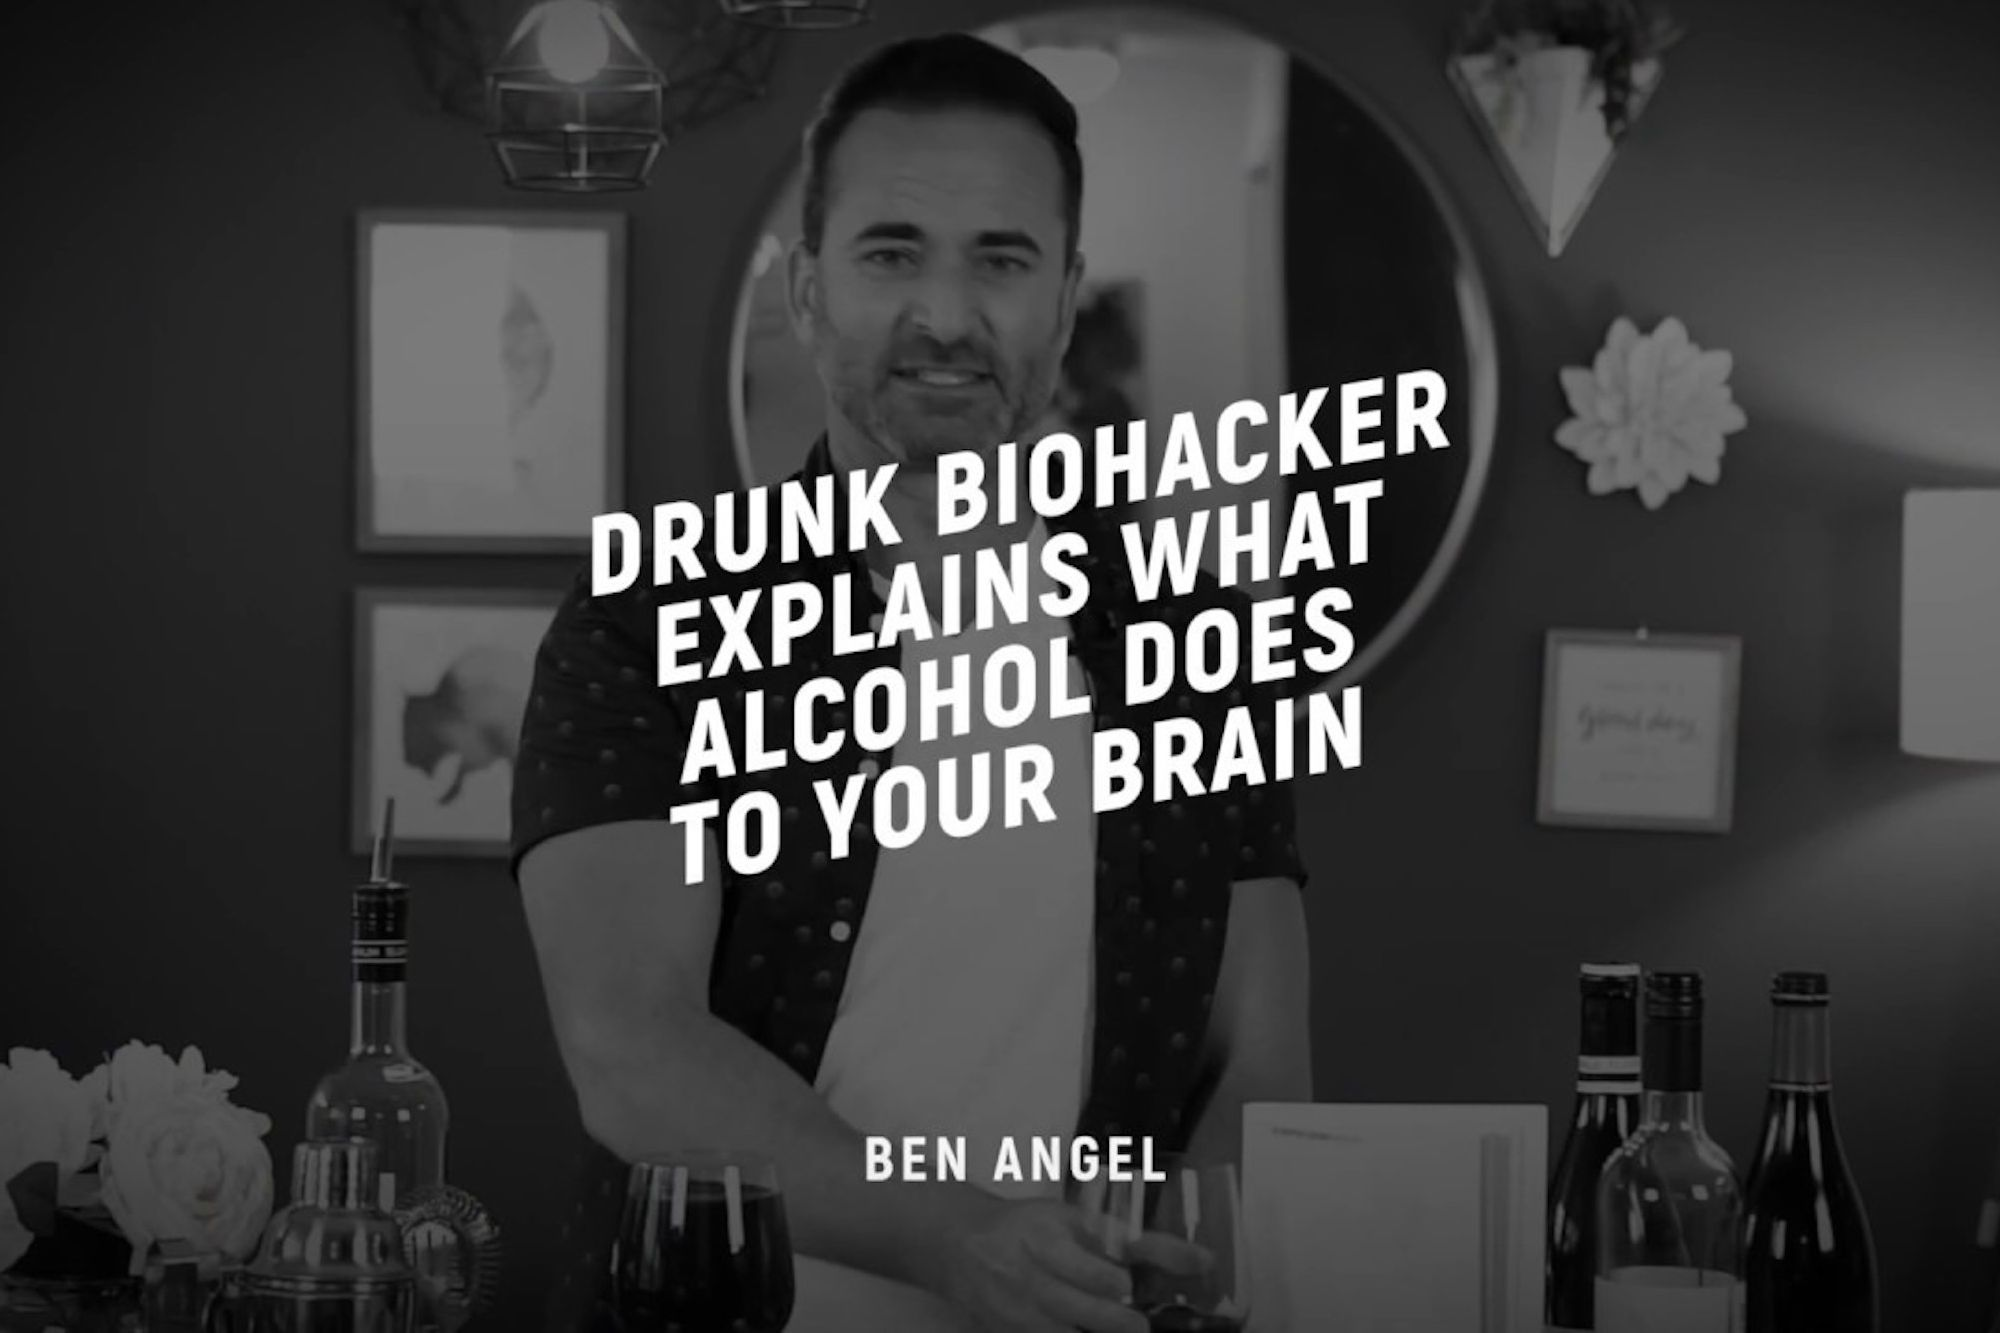 Drunk Biohacker Explains the Effects of Alcohol on the Brain